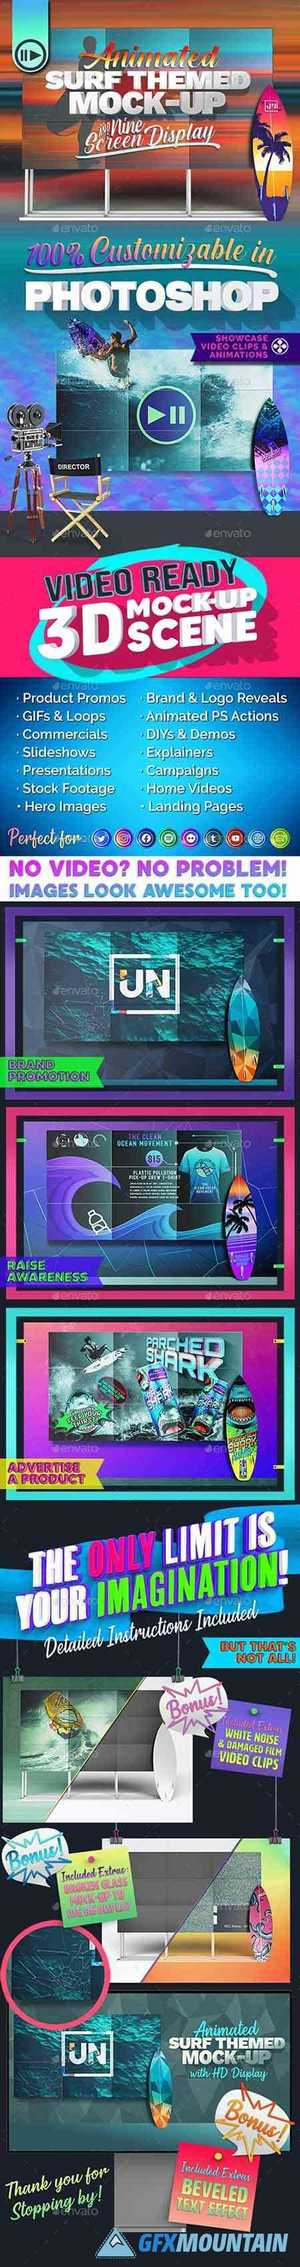 3D Animated Surfboard and HD Display Mock-Up Scene Template 27056336